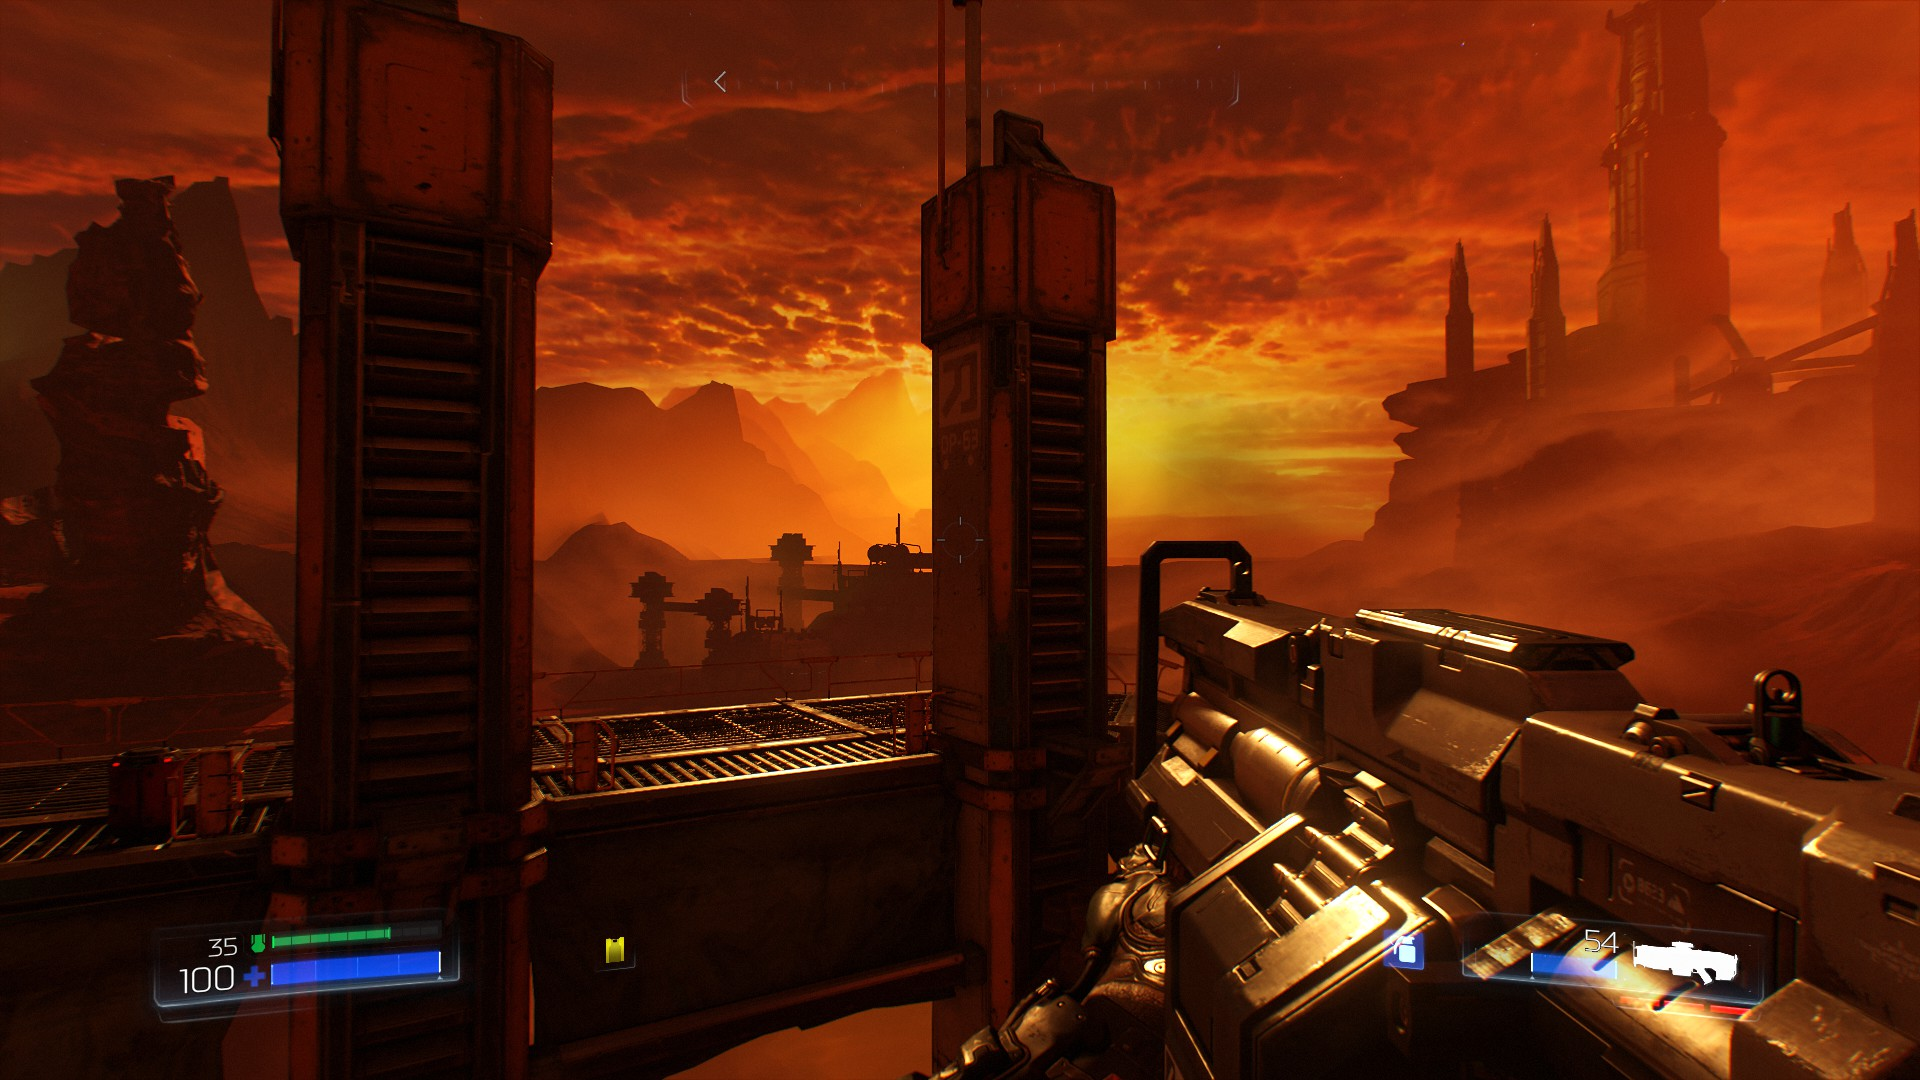 DOOM: Impressions and Reflections After Two Hours | The